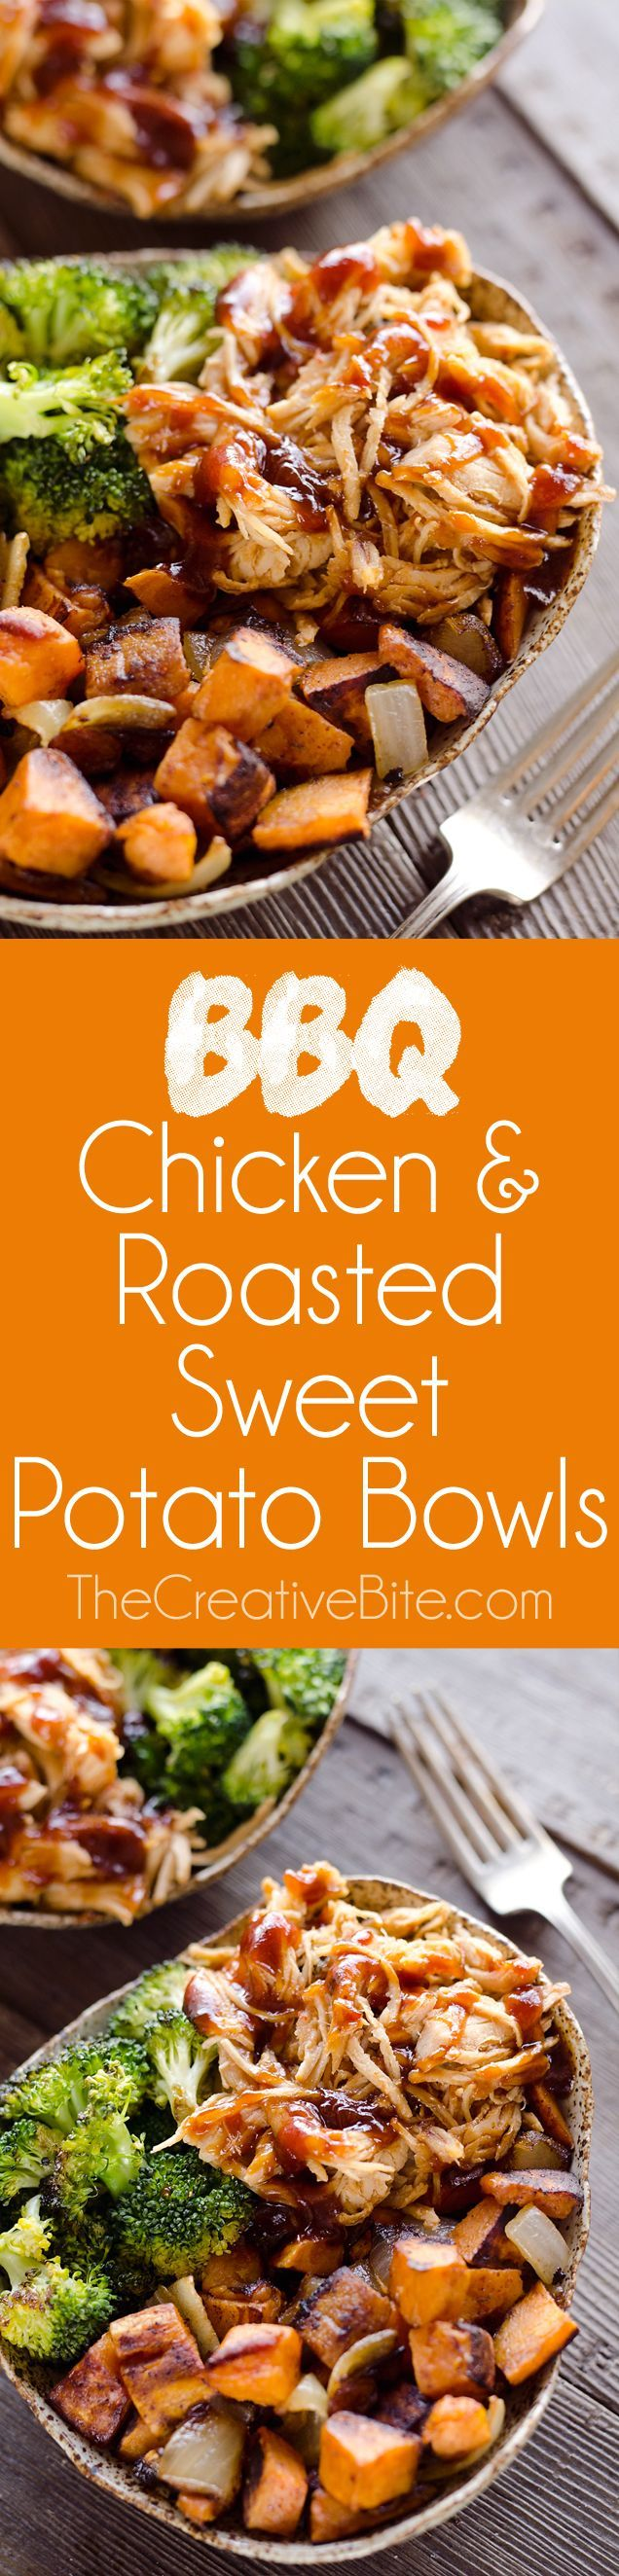 BBQ Chicken & Roasted Sweet Potato Bowls are a hearty and healthy dinner idea bursting with bold flavors and nutritious vegetables. This easy sheet pan recipe is perfect for meal prepping lunches for work or a quick weeknight meal.